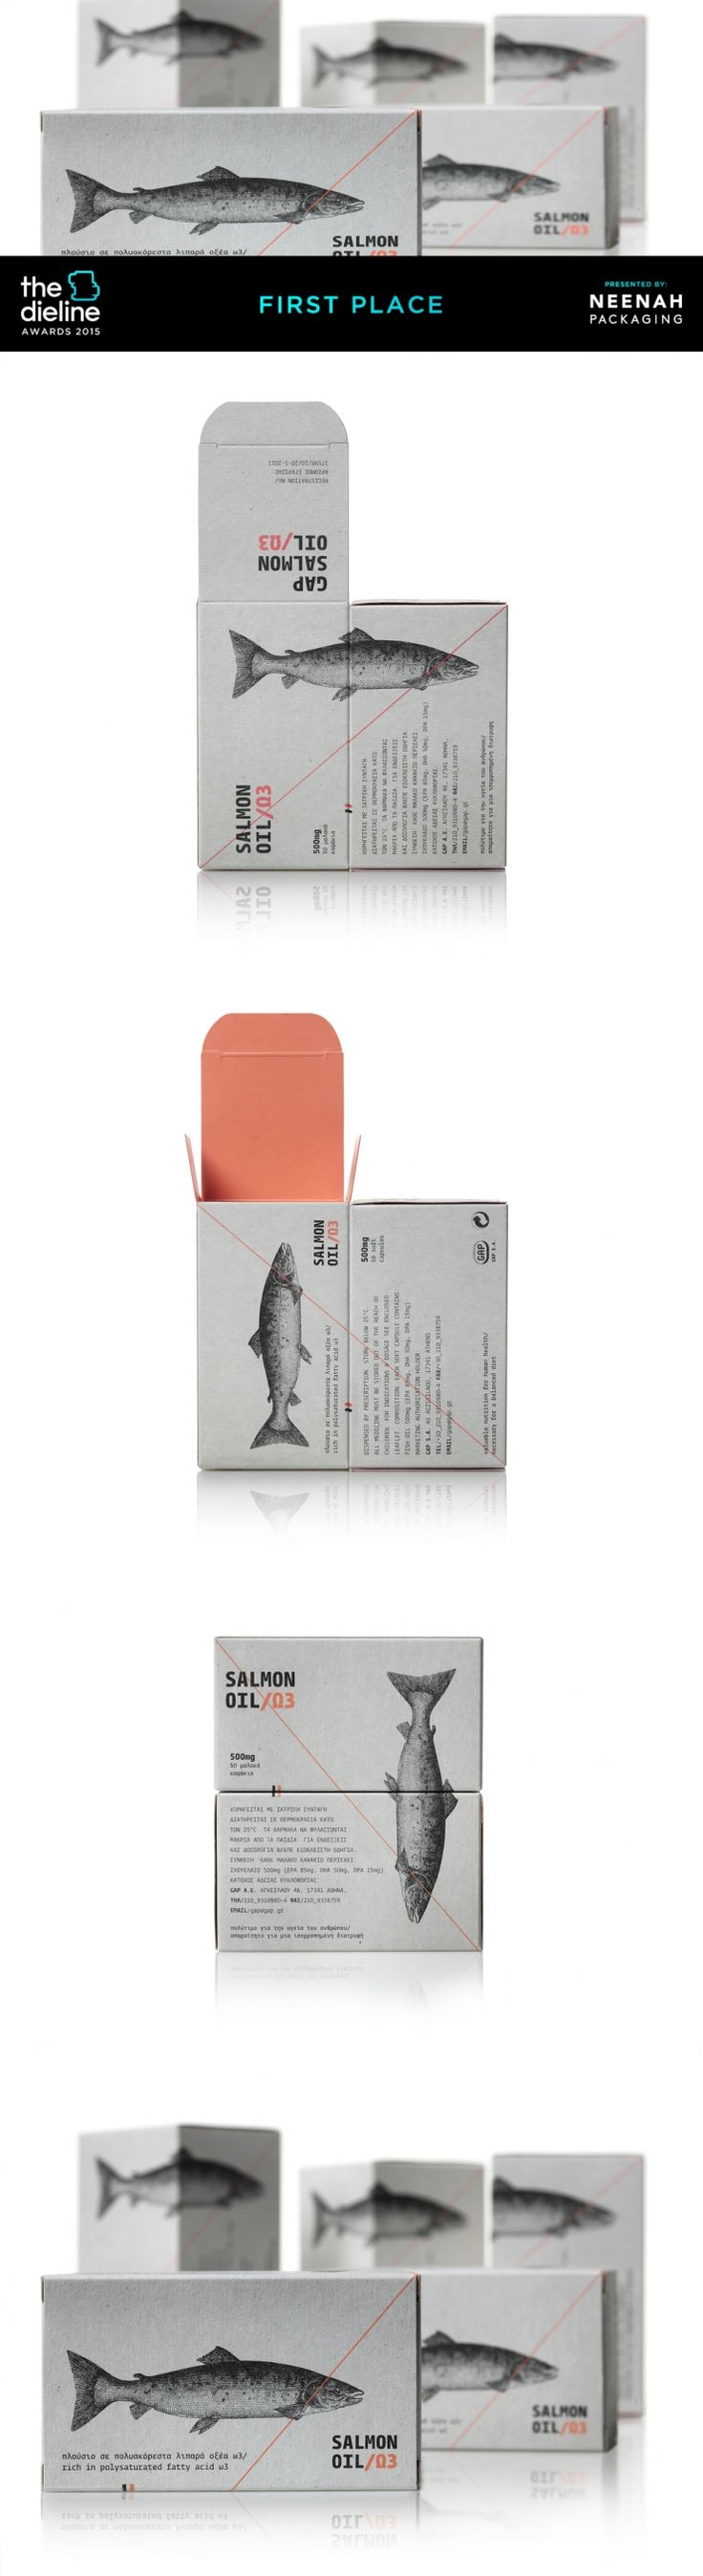 The Dieline Awards 2015: 1st Place Health, Cosmetics, Fragrance, Fashion- Salmon Oil — The Dieline | Packaging & Branding Design & Innovation News